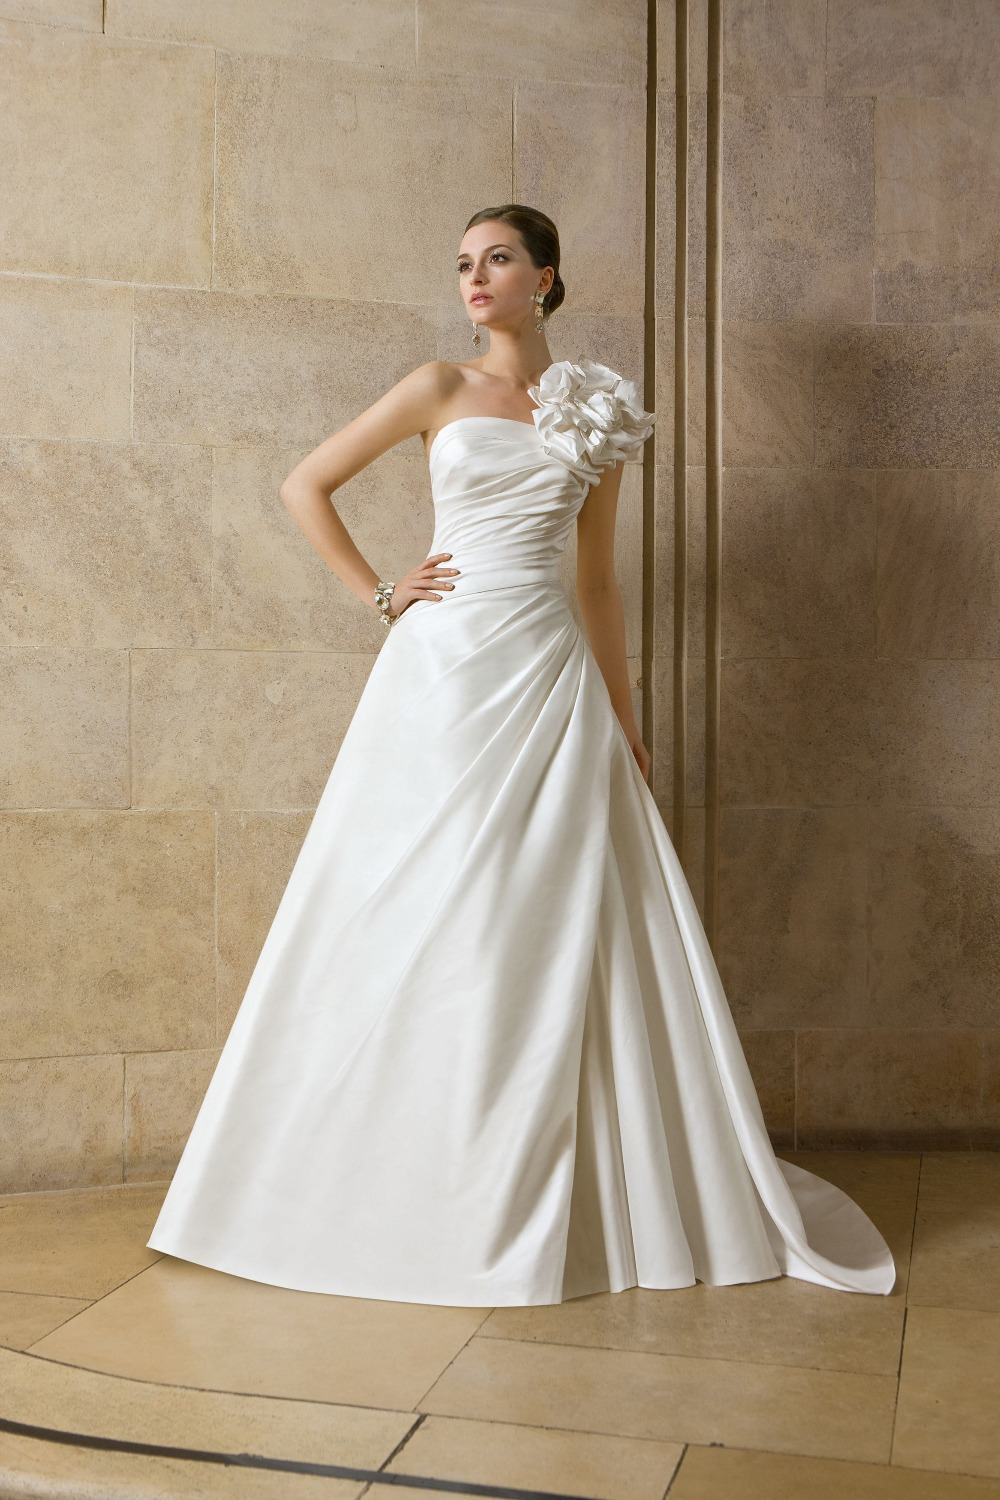 Elegant white simple long ball gown spring wedding dresses for Wedding dresses to buy off the rack